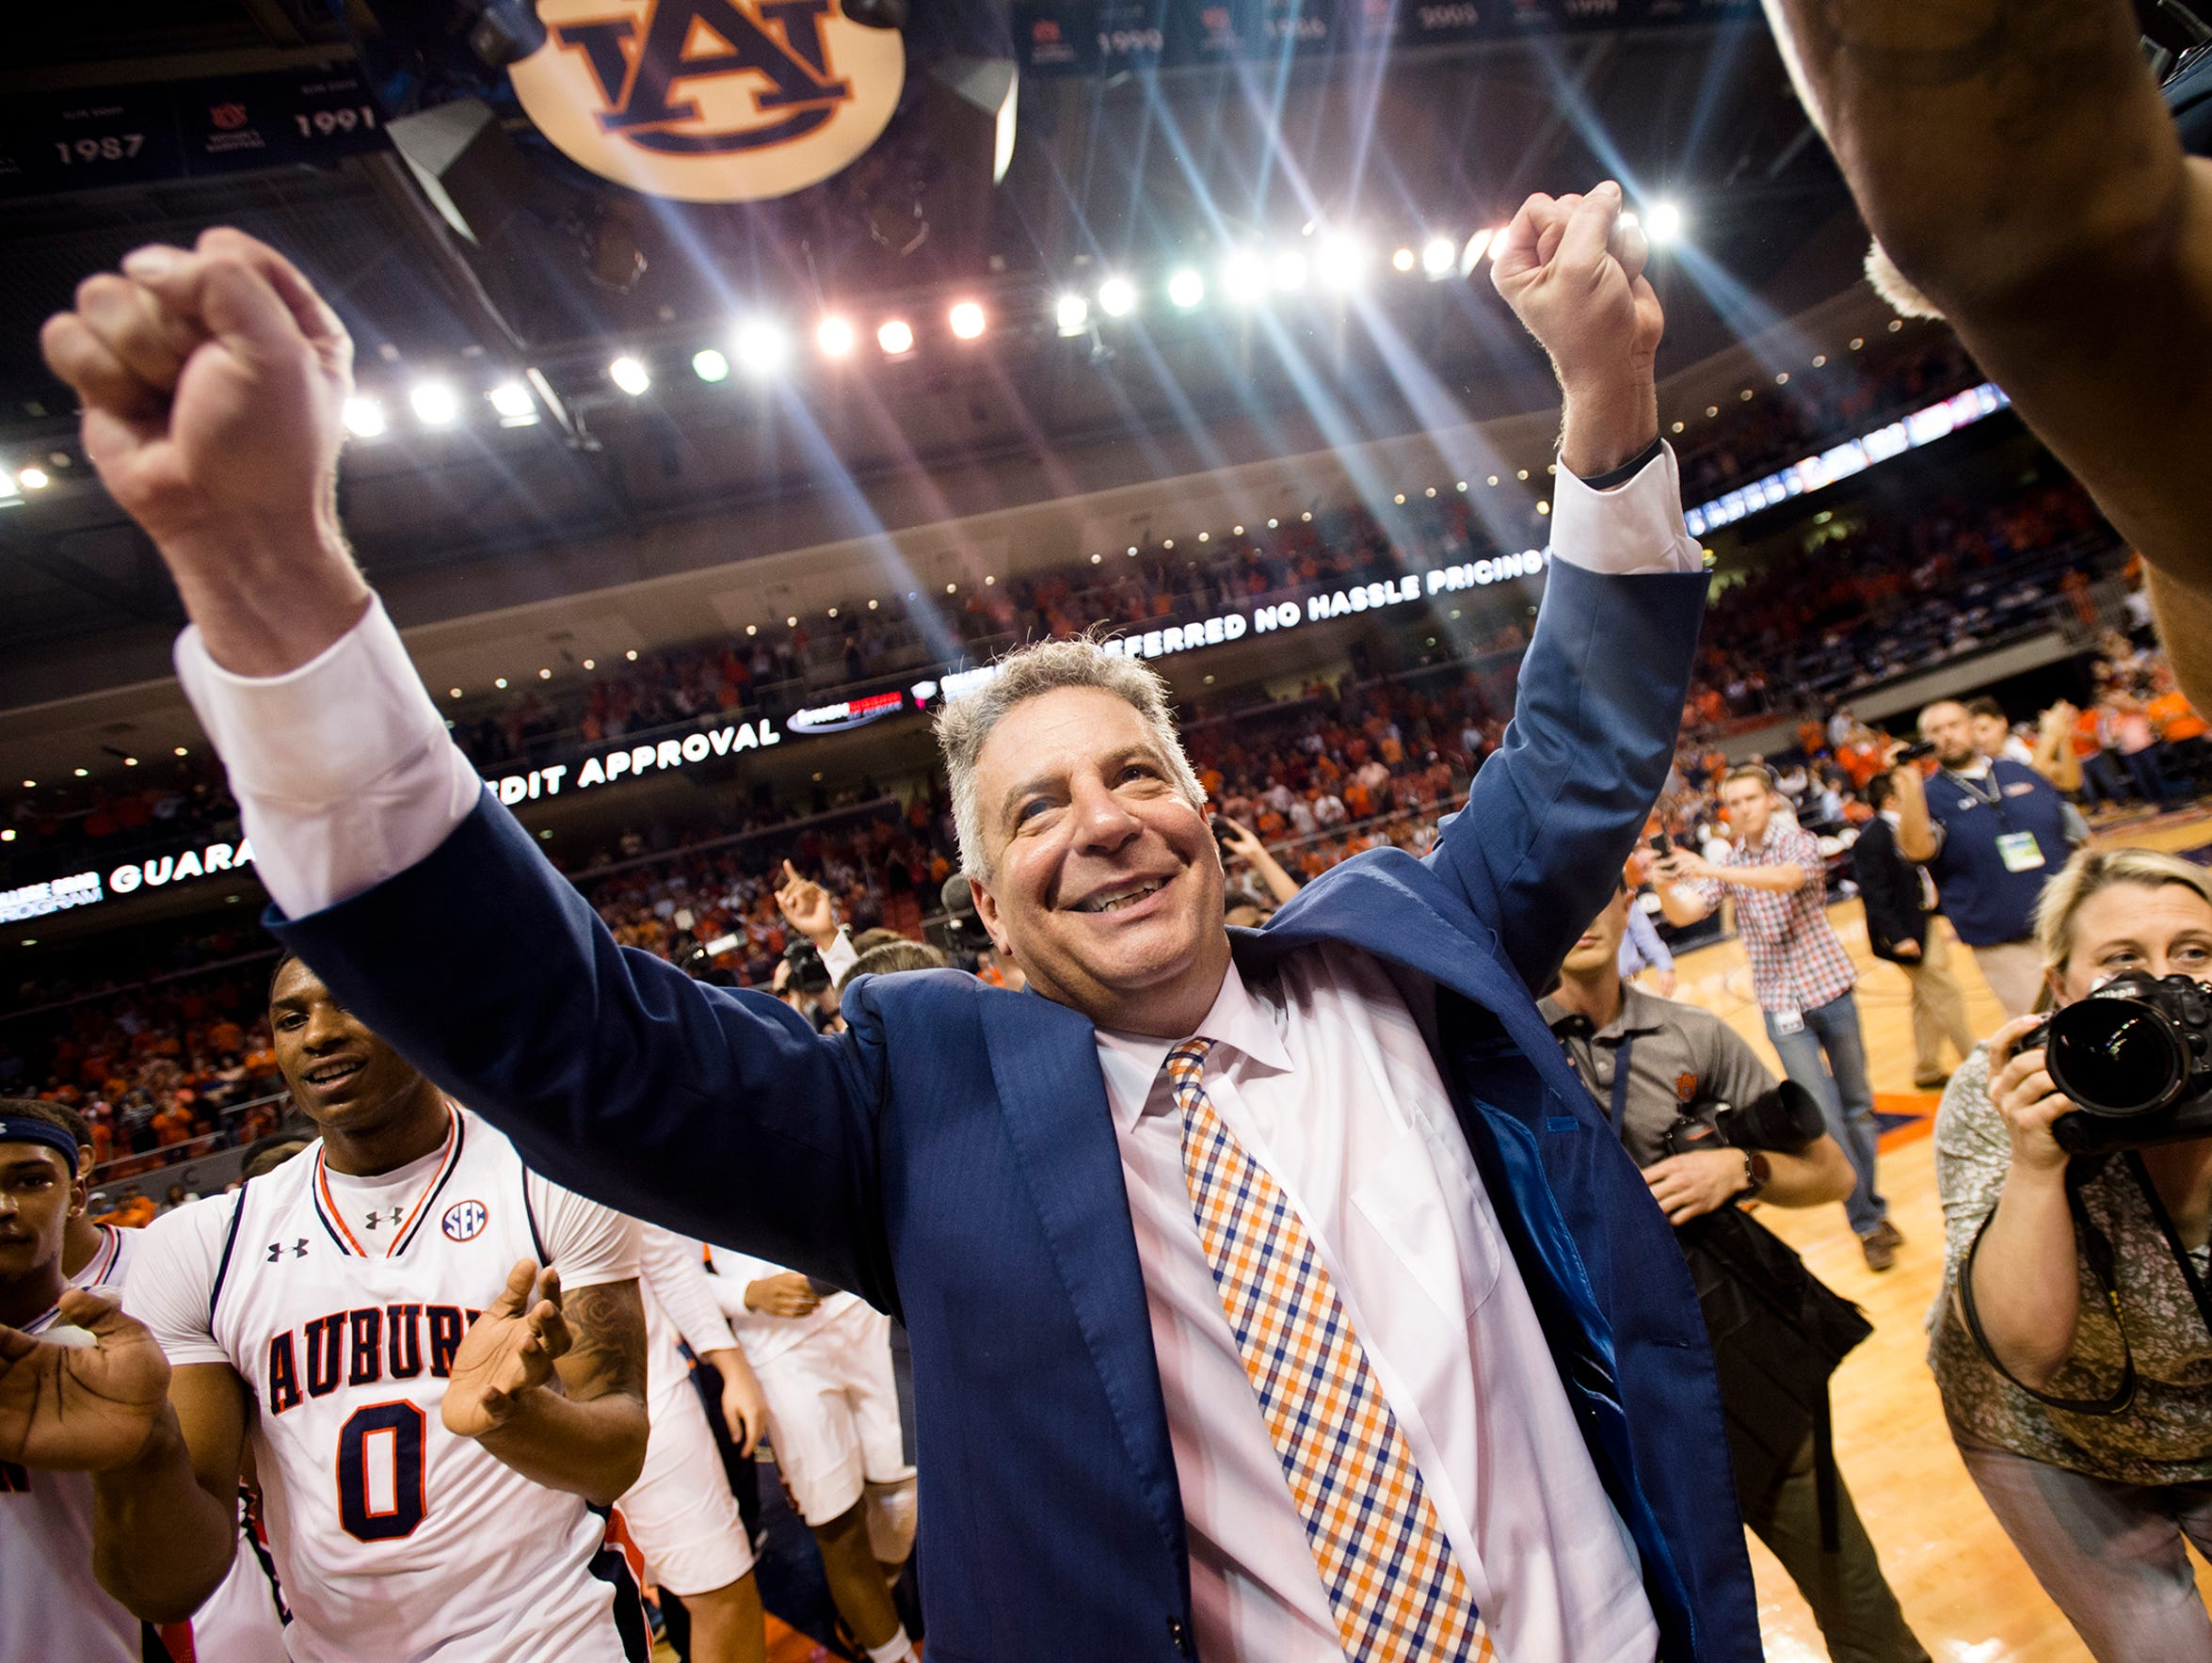 Auburn head coach Bruce Pearl has the Tigers in the NCAA Tournament for the first time in 15 years. Pearl led UW-Milwaukee to three postseason berths, including two NCAA Tournament appearances, from 2003-05.